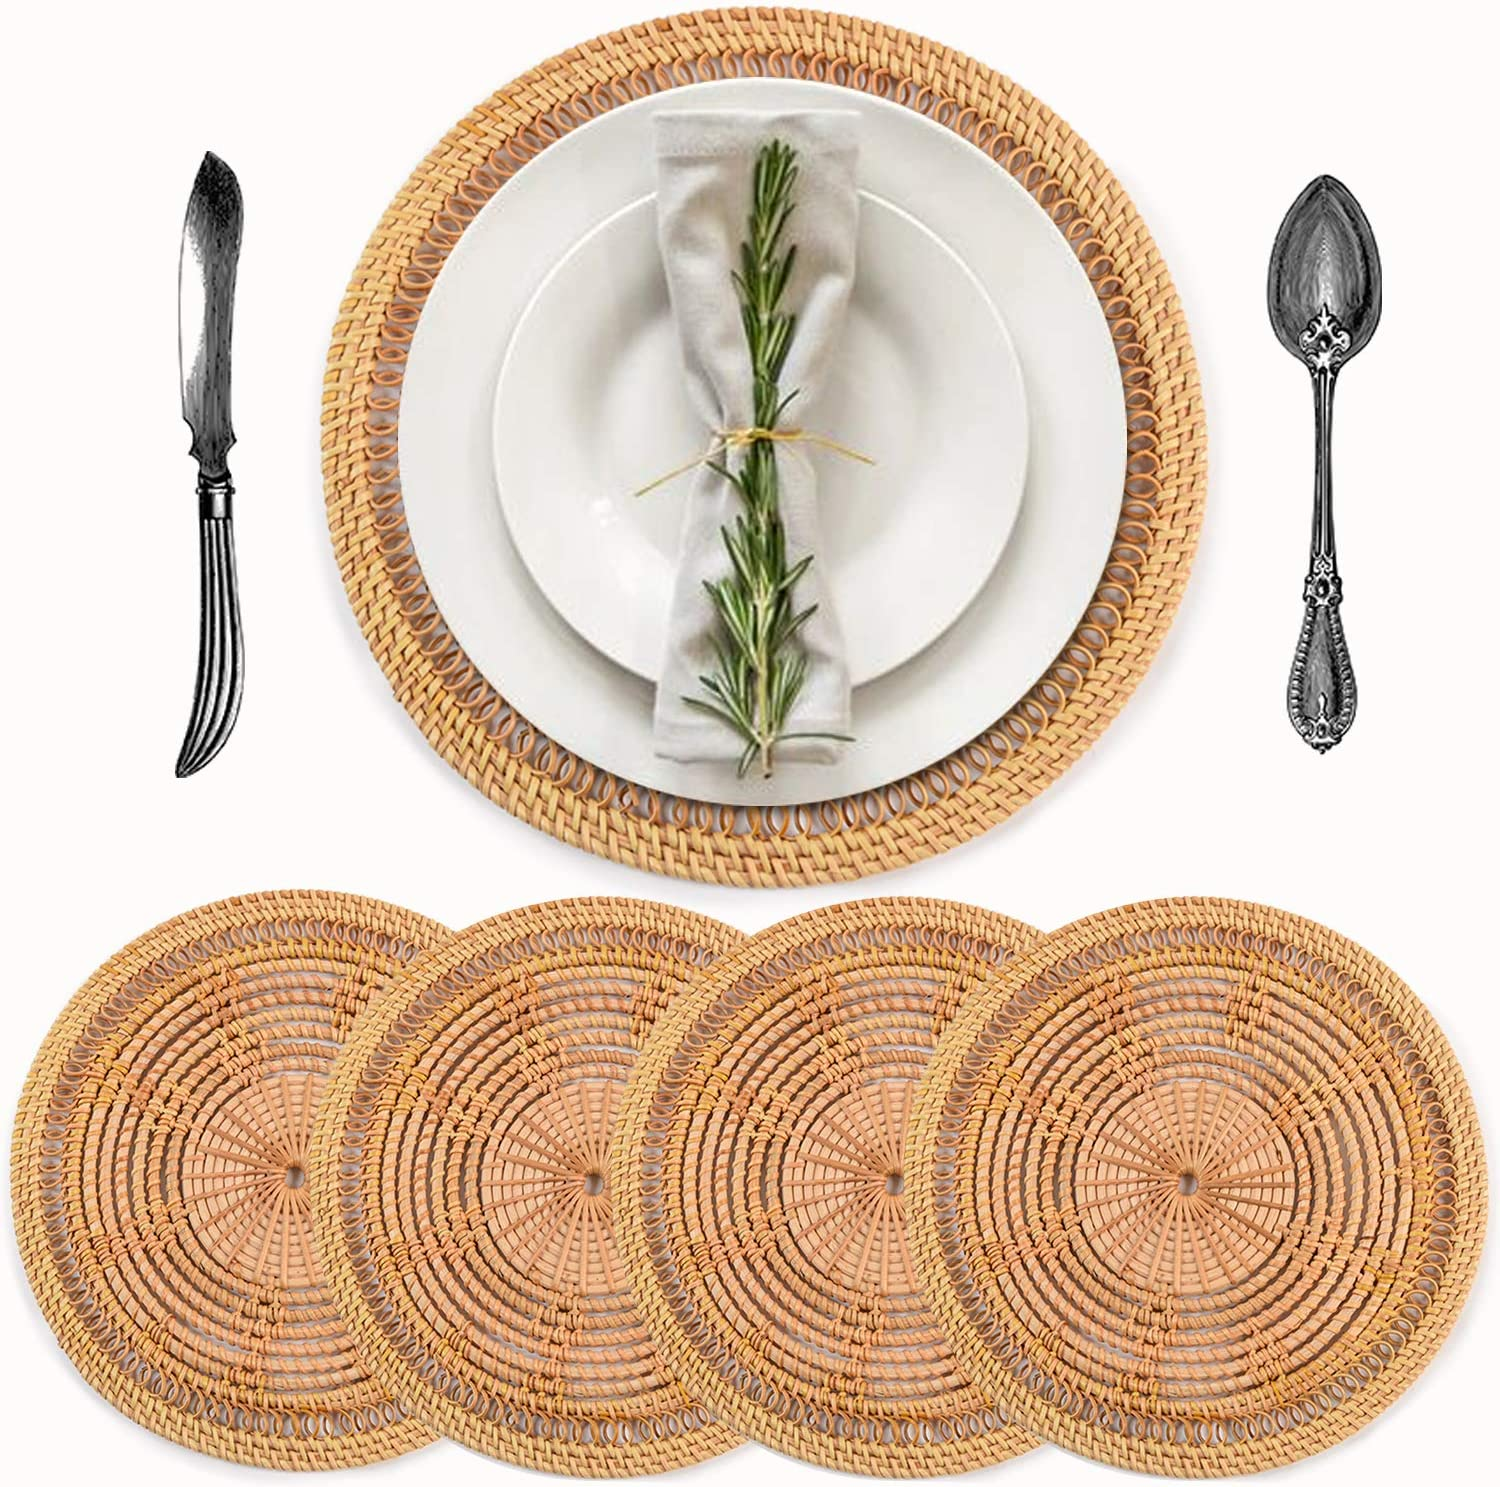 Handmade Rattan Placemats for Round Table, Round Placemats can be Used as Place mats, Rattan Decor, Rattan Side Table, Boho placemats or Rattan Chargers, Wicker placemats 11.8 in, 4 Pcs, Flower